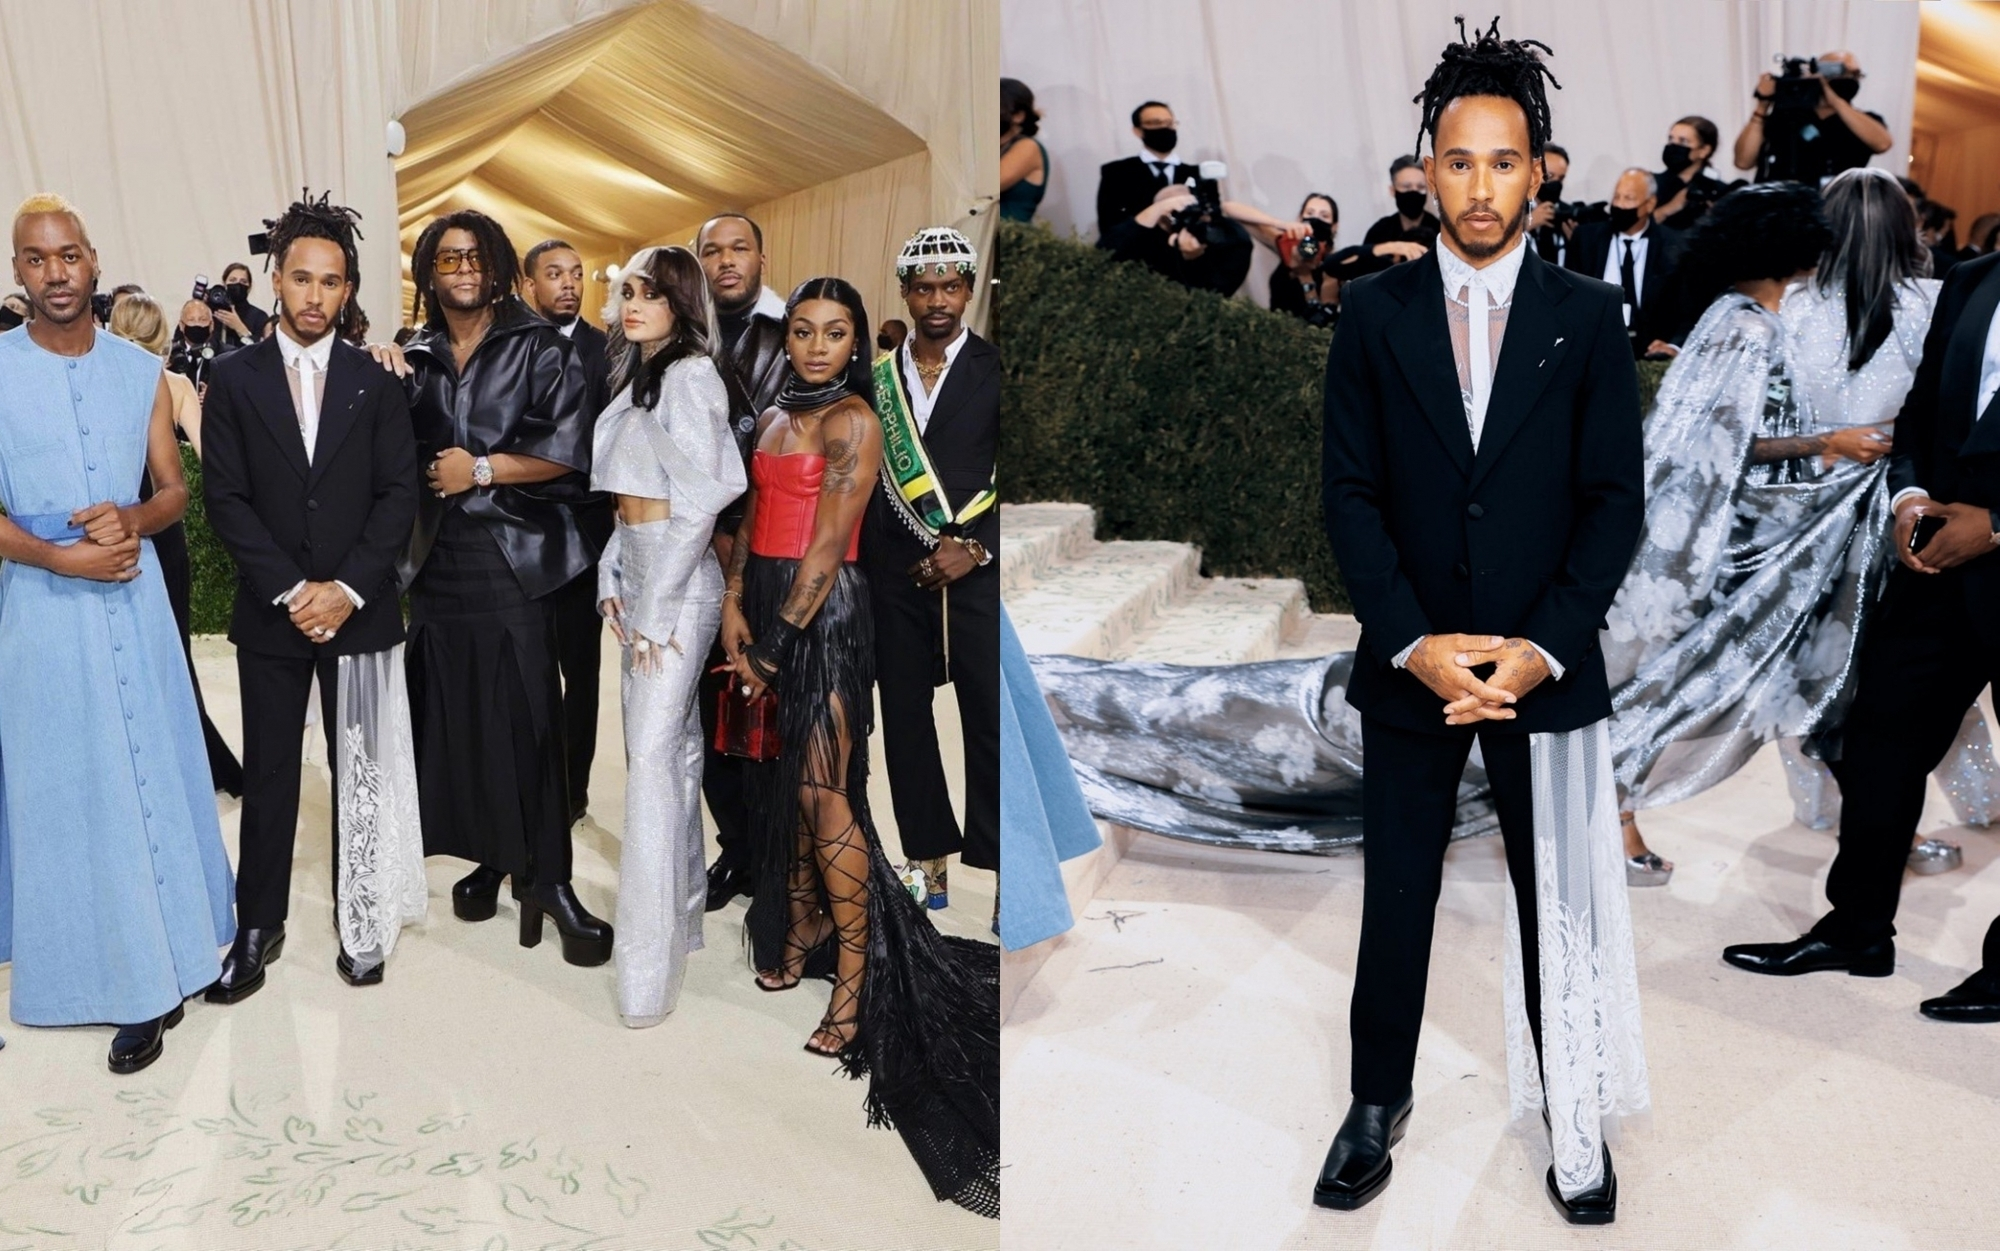 Hamilton courts controversy by supporting 'Black creatives' in Met Gala